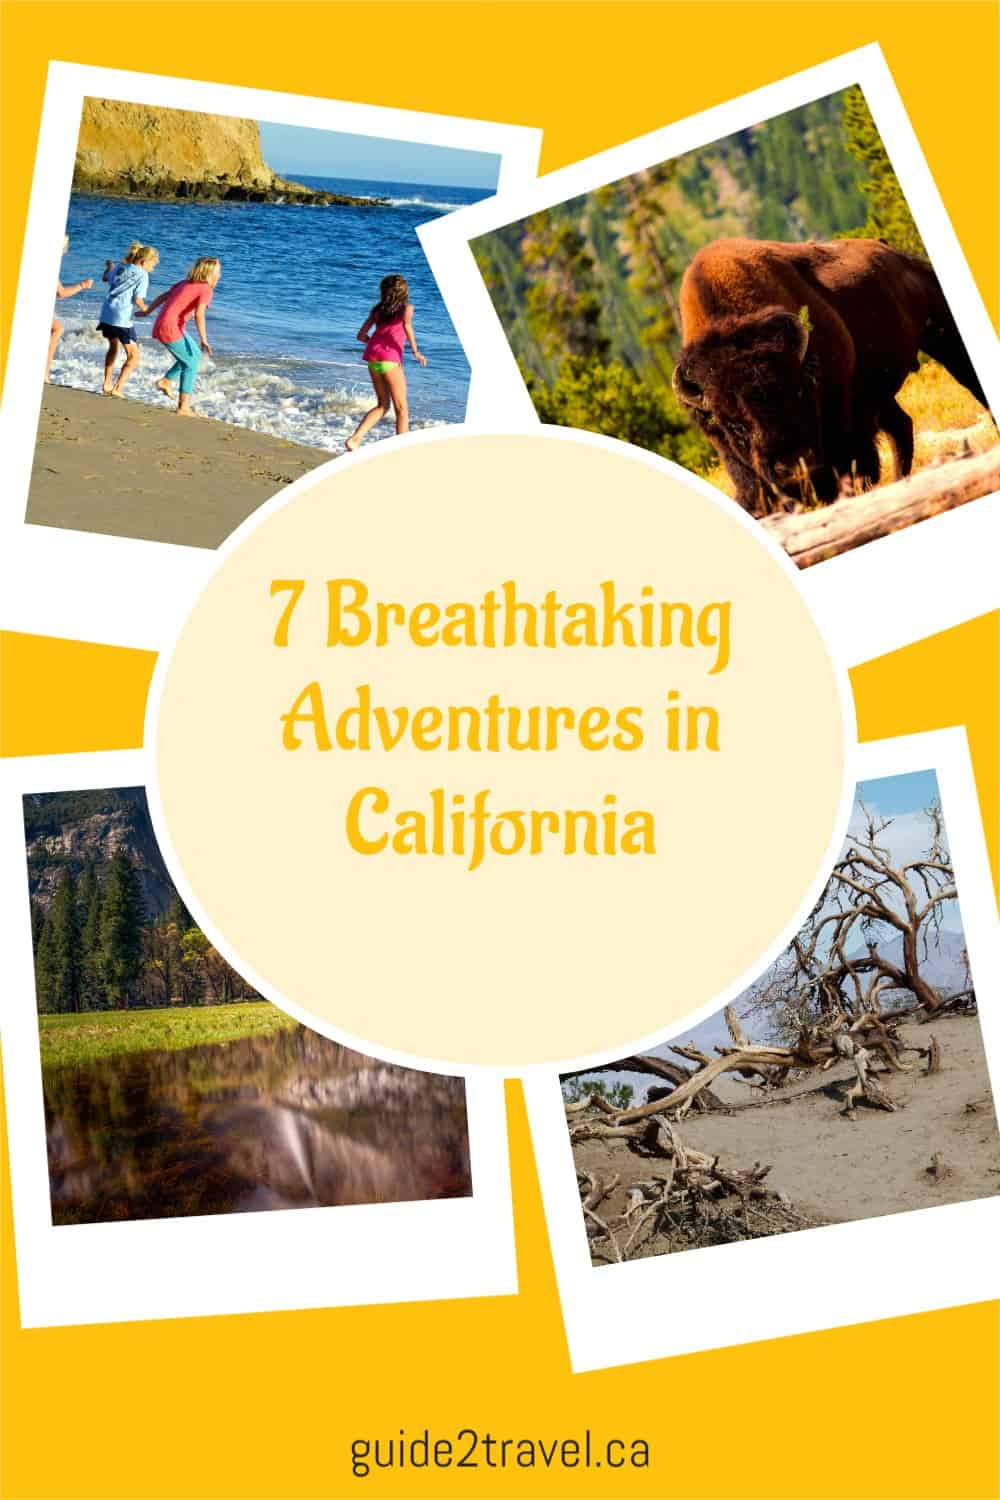 Check out these 7 breathtaking nature adventures to take in California, USA!